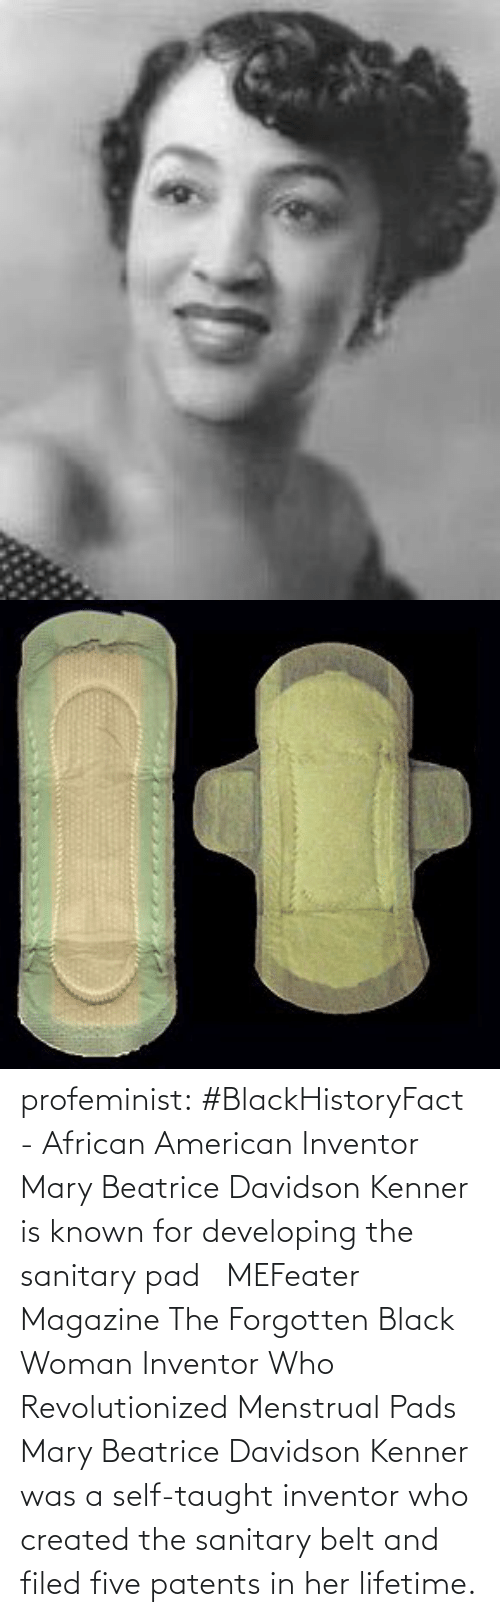 Twitter: profeminist:   #BlackHistoryFact - African American Inventor Mary Beatrice Davidson Kenner is known for developing the sanitary pad   MEFeater Magazine      The Forgotten Black Woman Inventor Who Revolutionized Menstrual Pads Mary Beatrice Davidson Kenner was a self-taught inventor who created the sanitary belt and filed five patents in her lifetime.